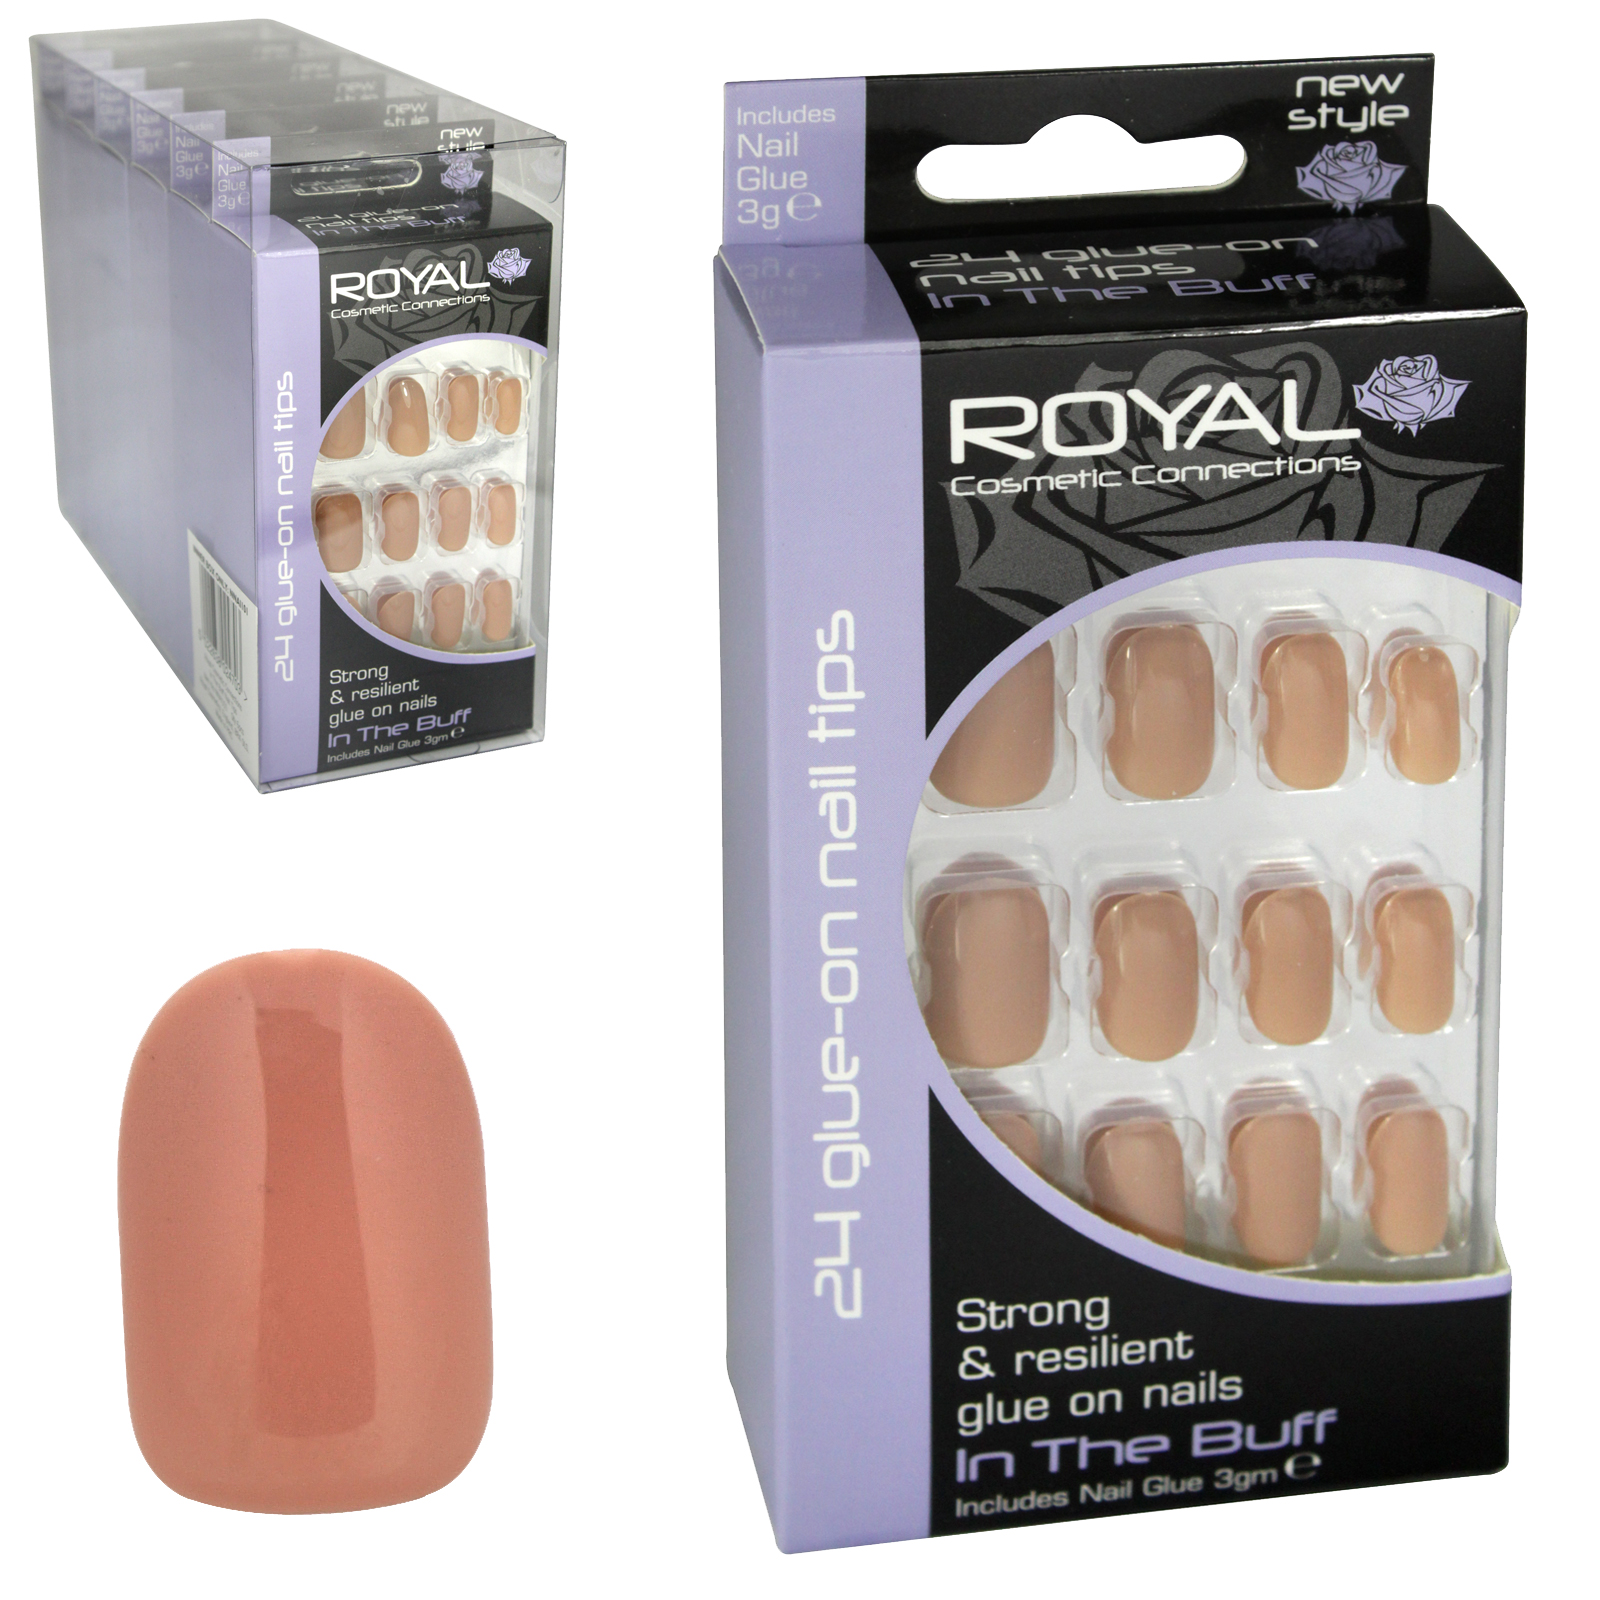 ROYAL 24 NAIL TIPS+3GM NAIL GLUE IN THE BUFF X6